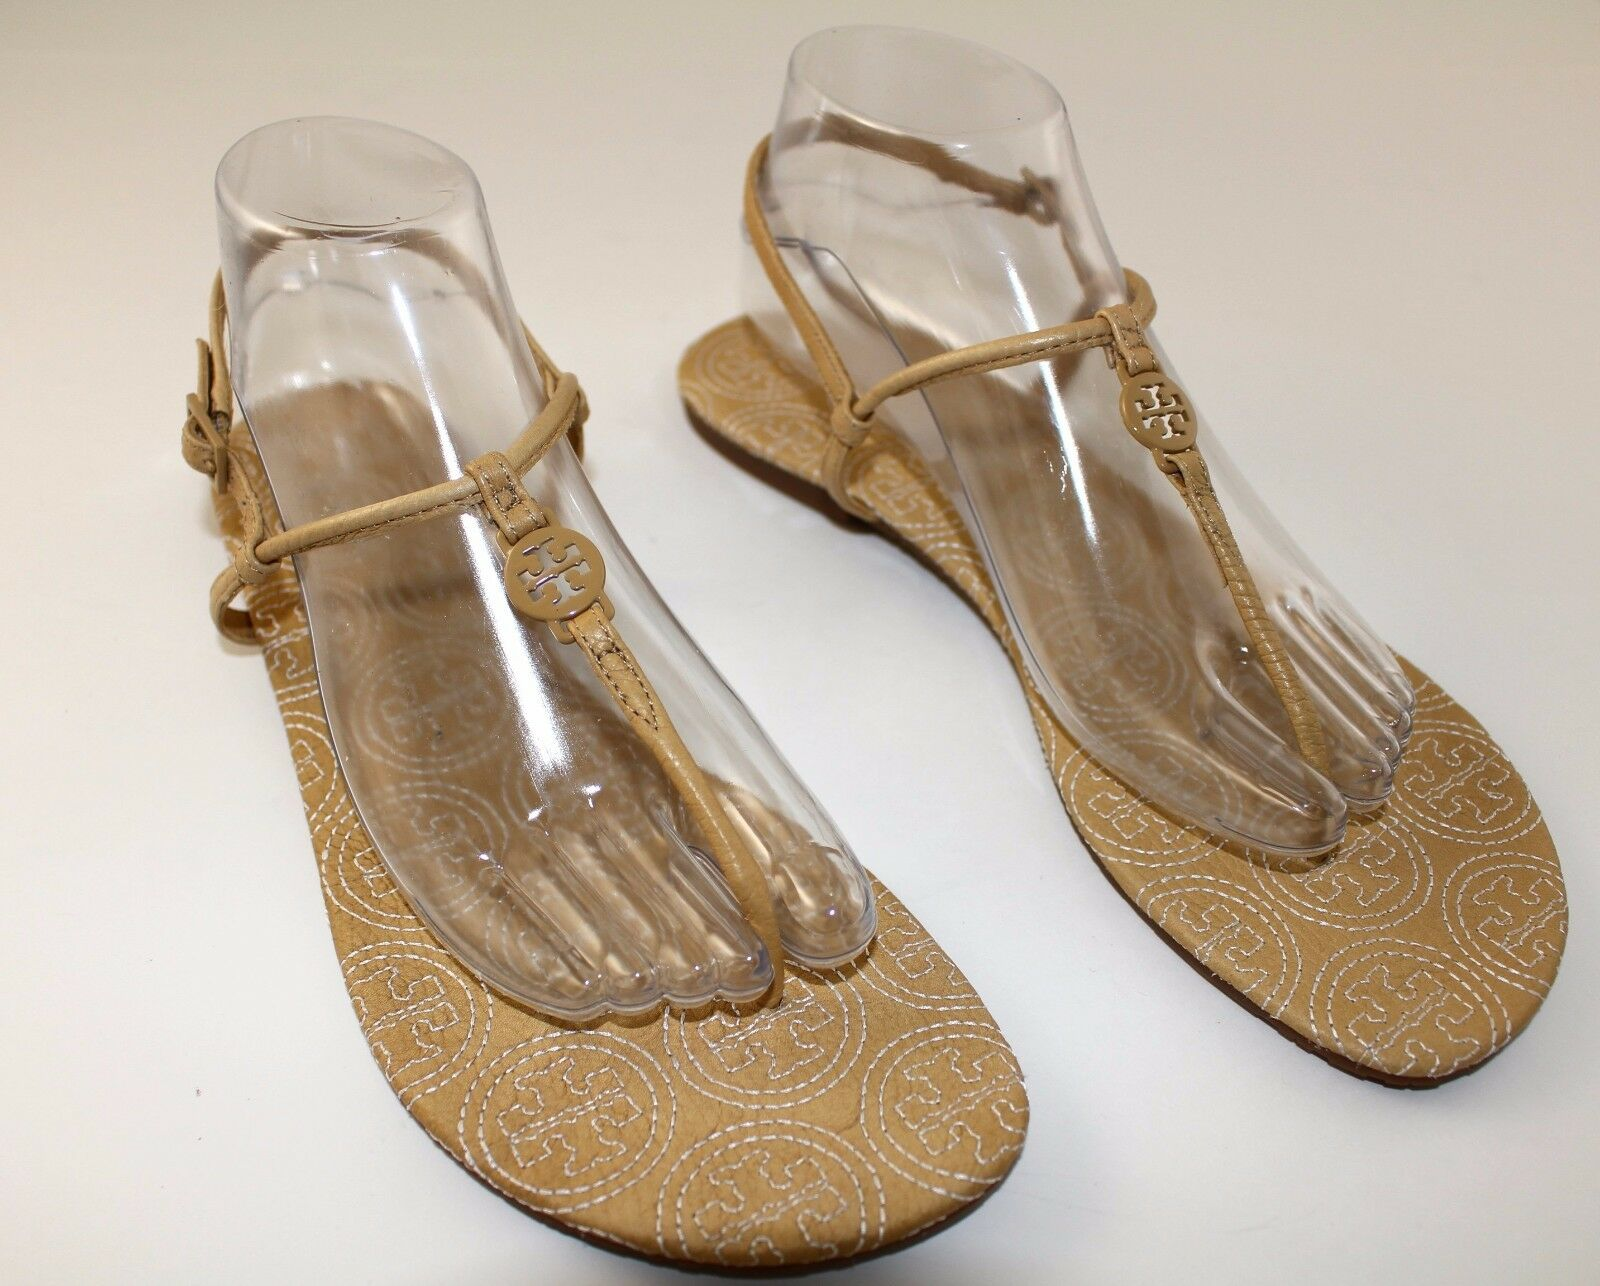 Tory Burch Beige Emmy Stitch Thong Sandals sz sz sz 10.5 657ec8